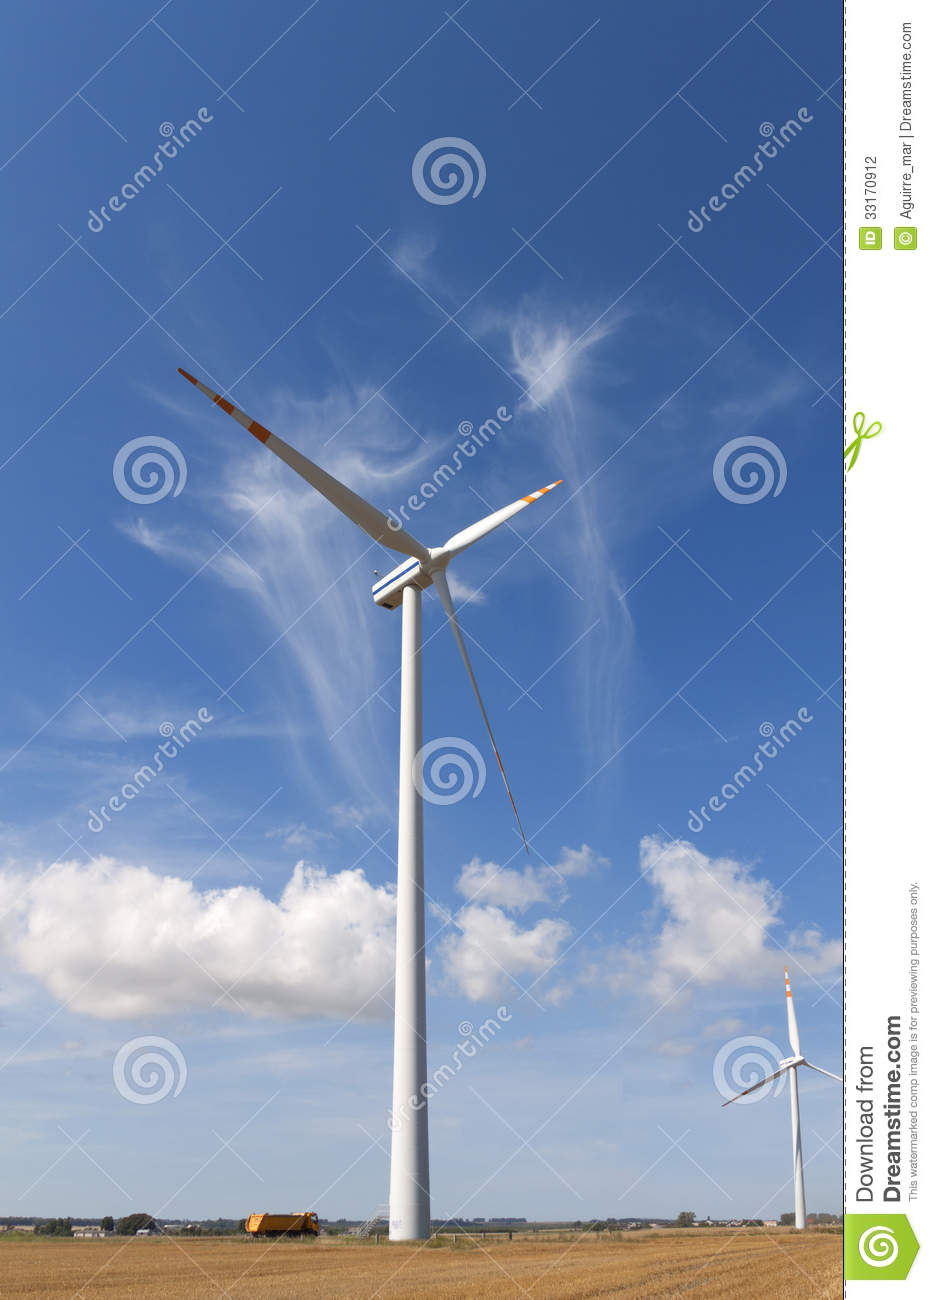 Windmills for renewable electric energy production.